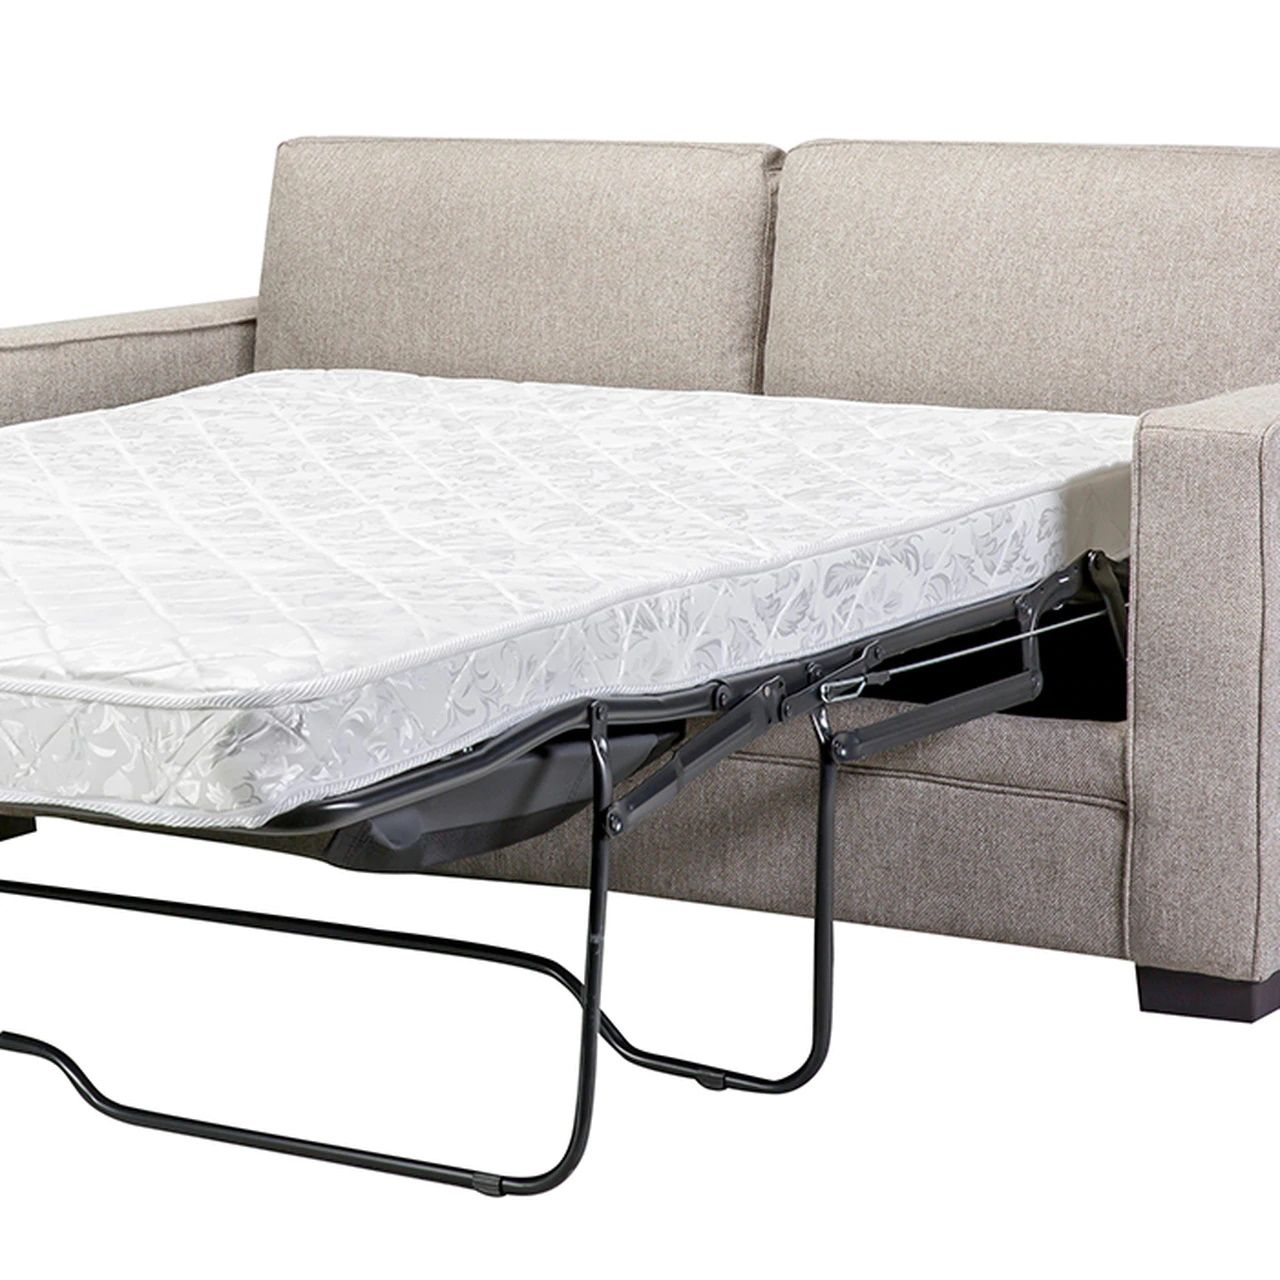 6 Best Sofa Bed Mattresses Reviewed In Detail Nov 2020